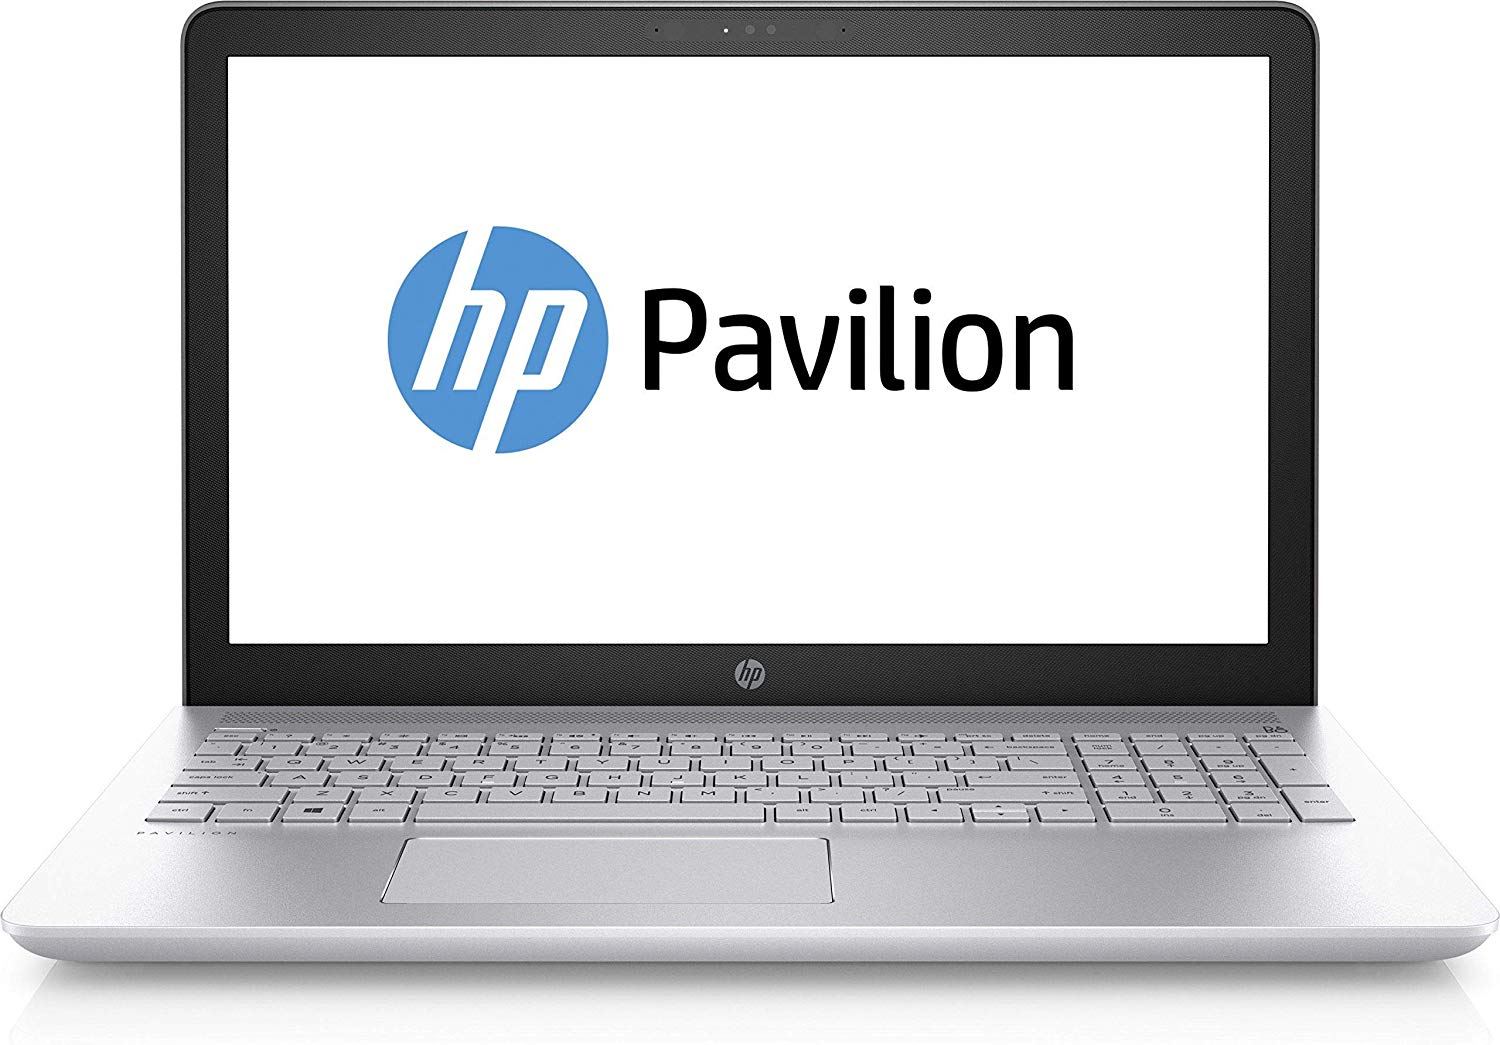 HP Pavilion Intel Core i5 15.6-inch FHD Thin and Light Laptop (8GB/1TB HDD/Windows 10 Home/2GB Graphics/Silver/2.02 kg), cc129TX